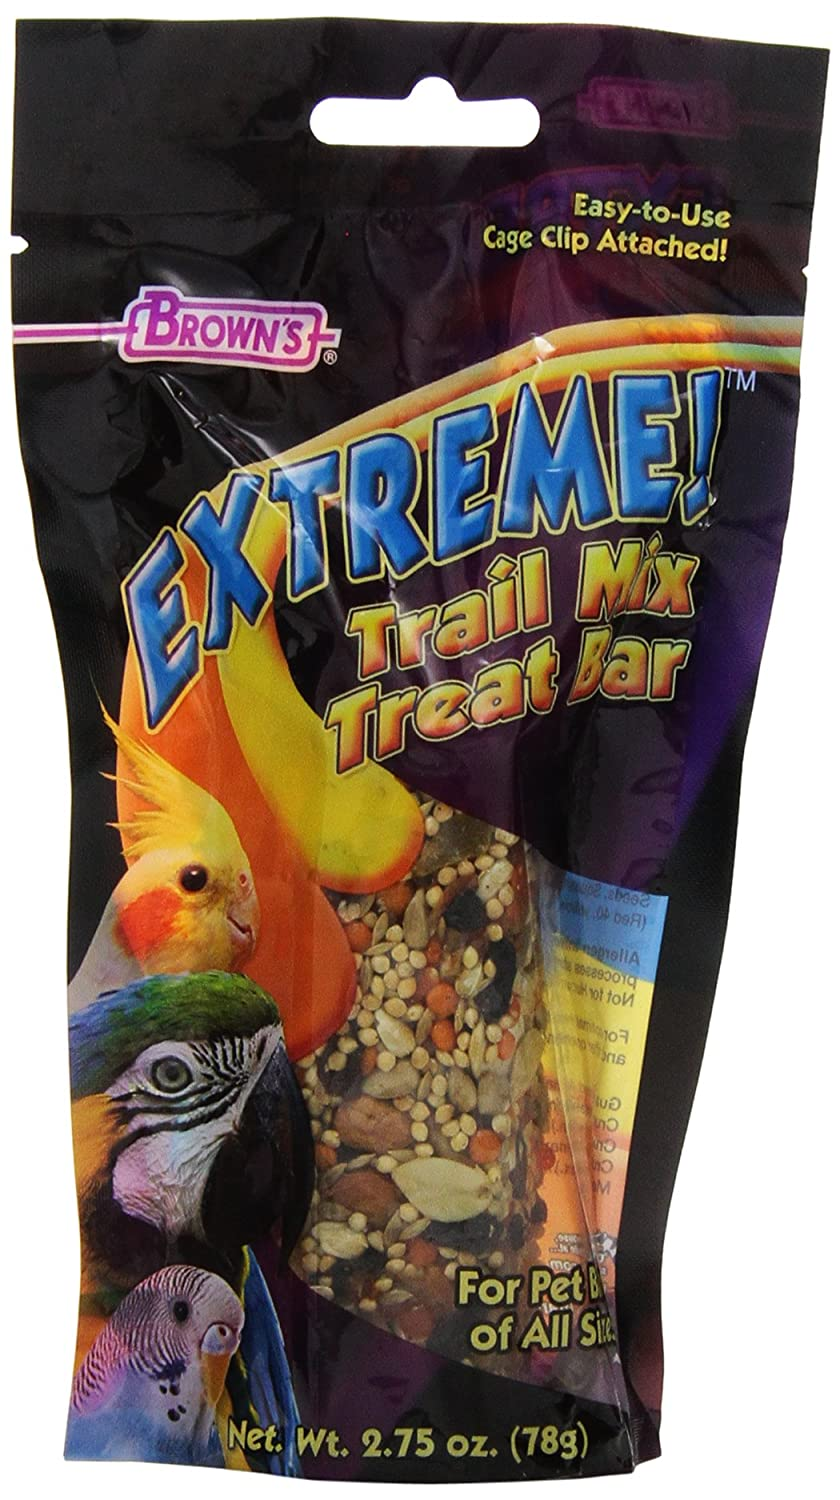 F.M.Brown'S 44920 Extreme Trail Mix Treat Bar For Pet Birds, 2.75-Ounce